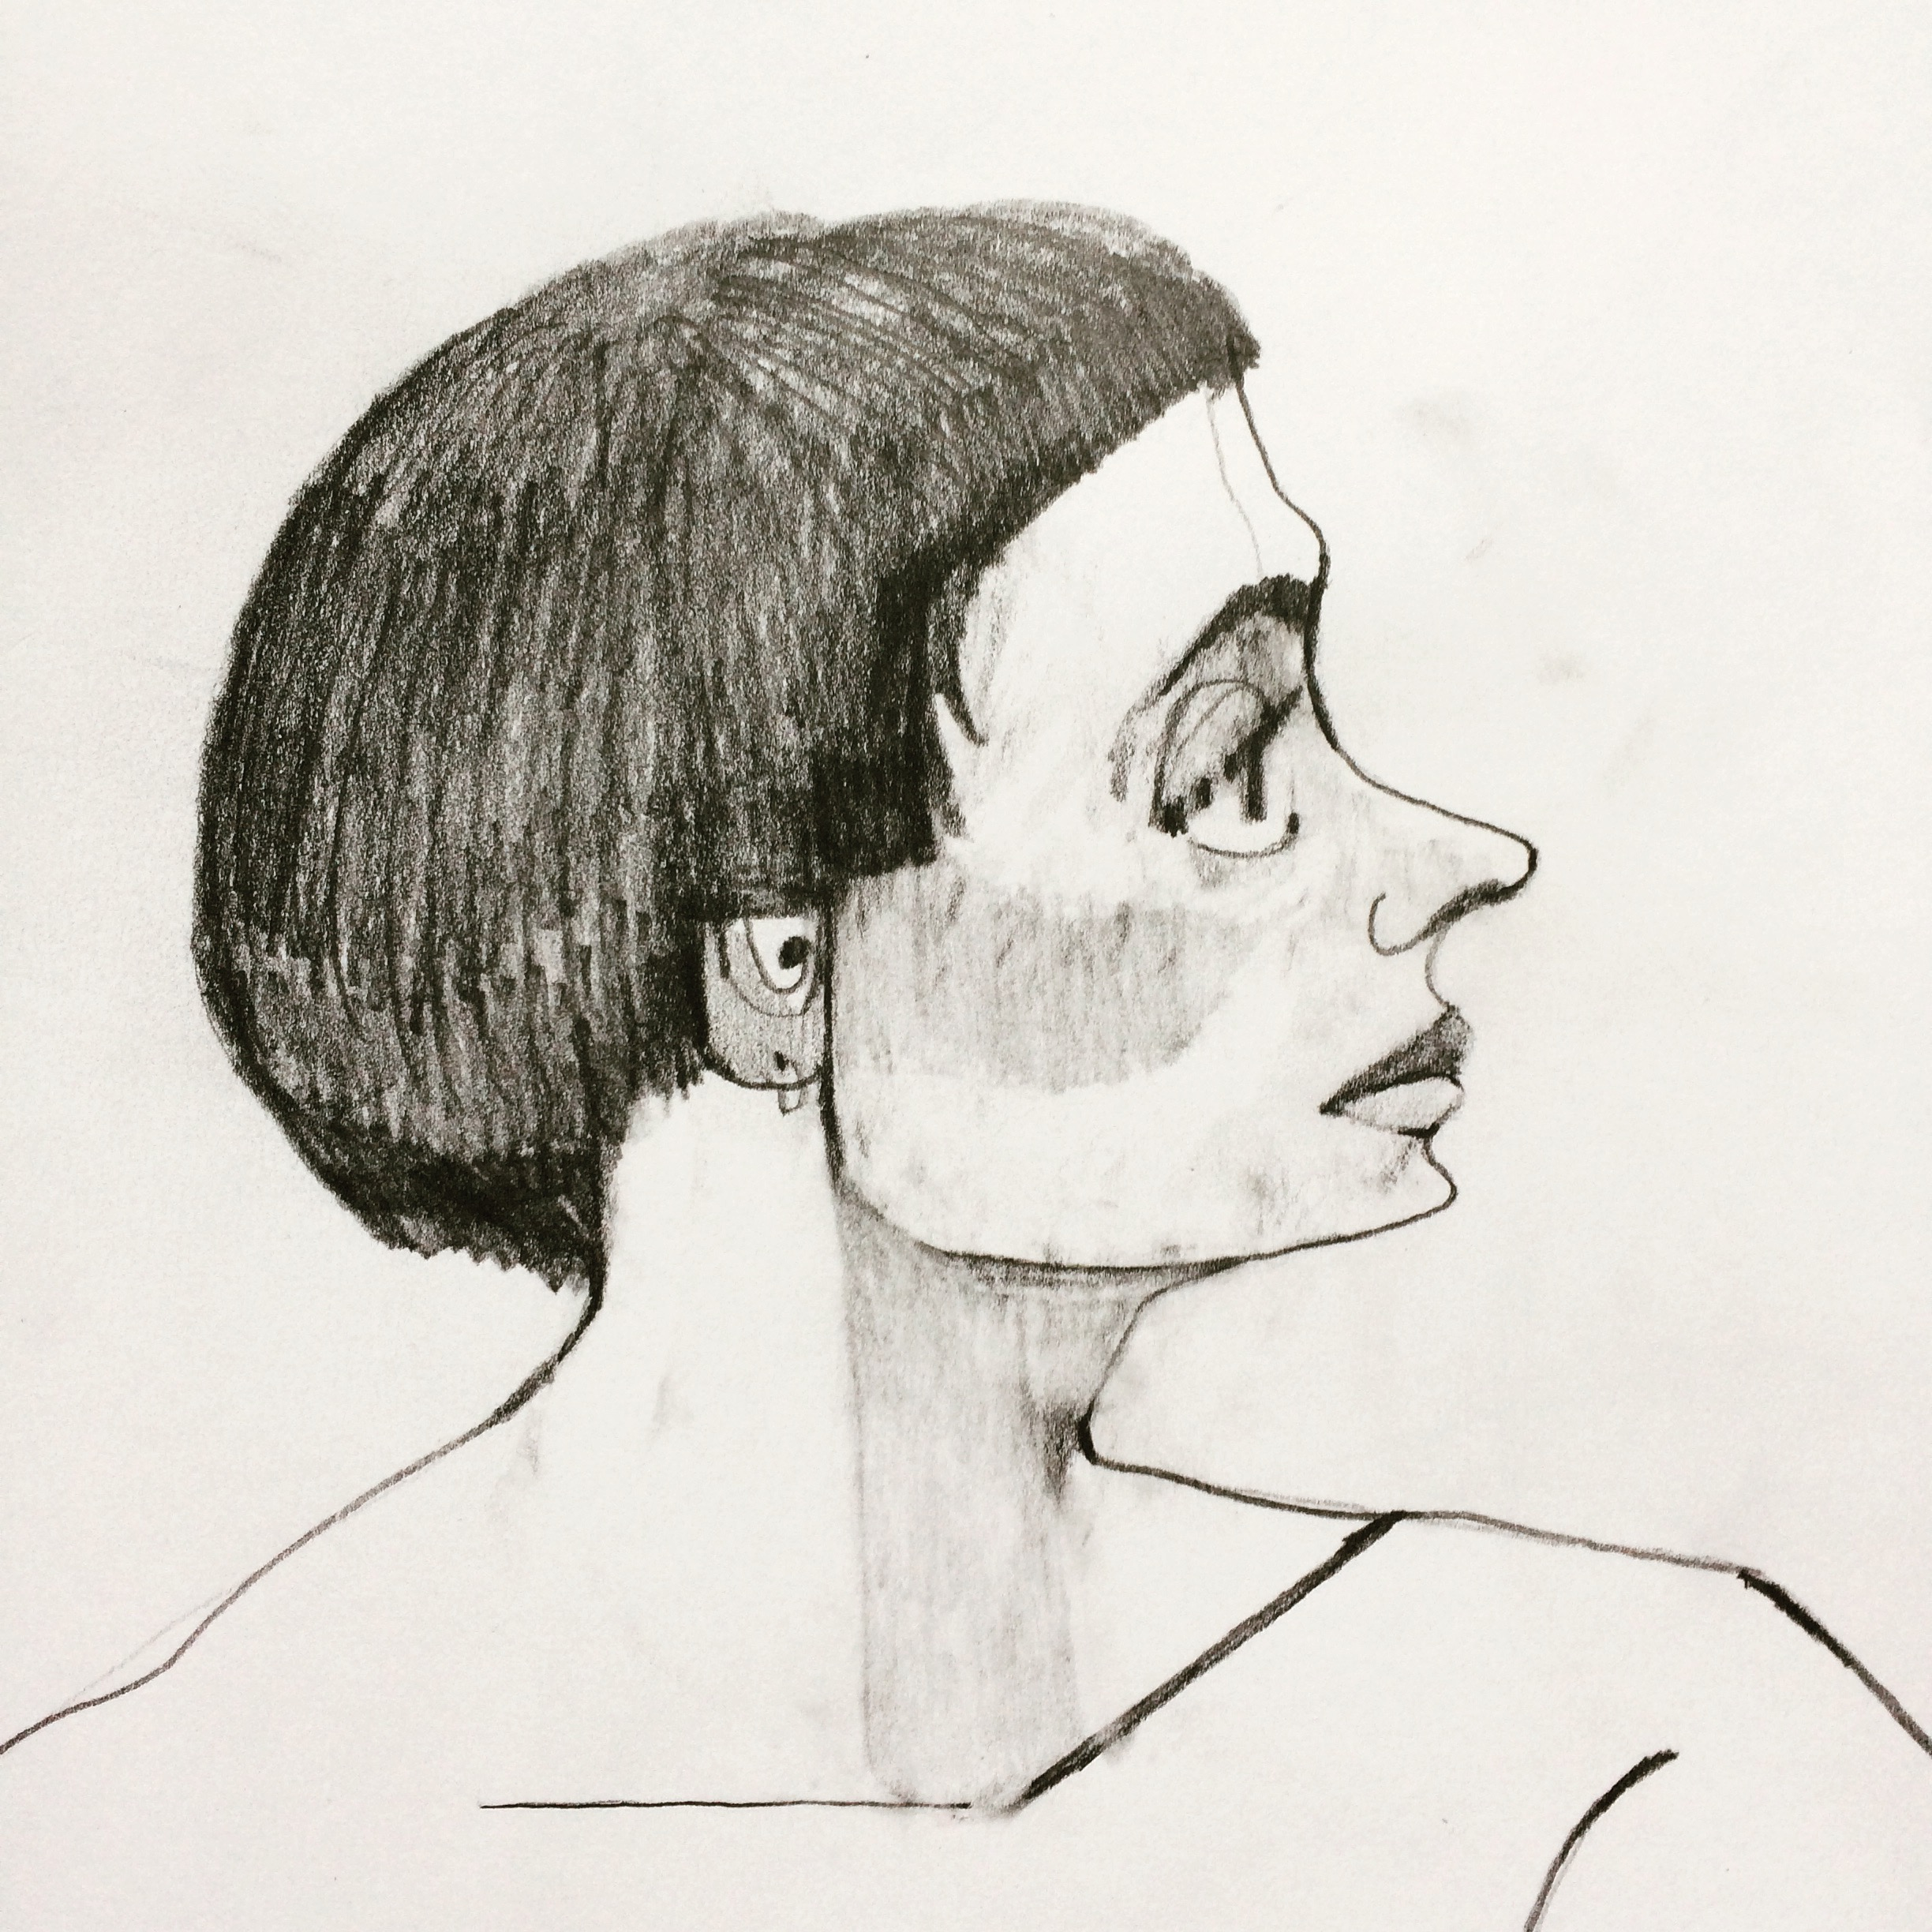 20 minute drawing - pencil on paper